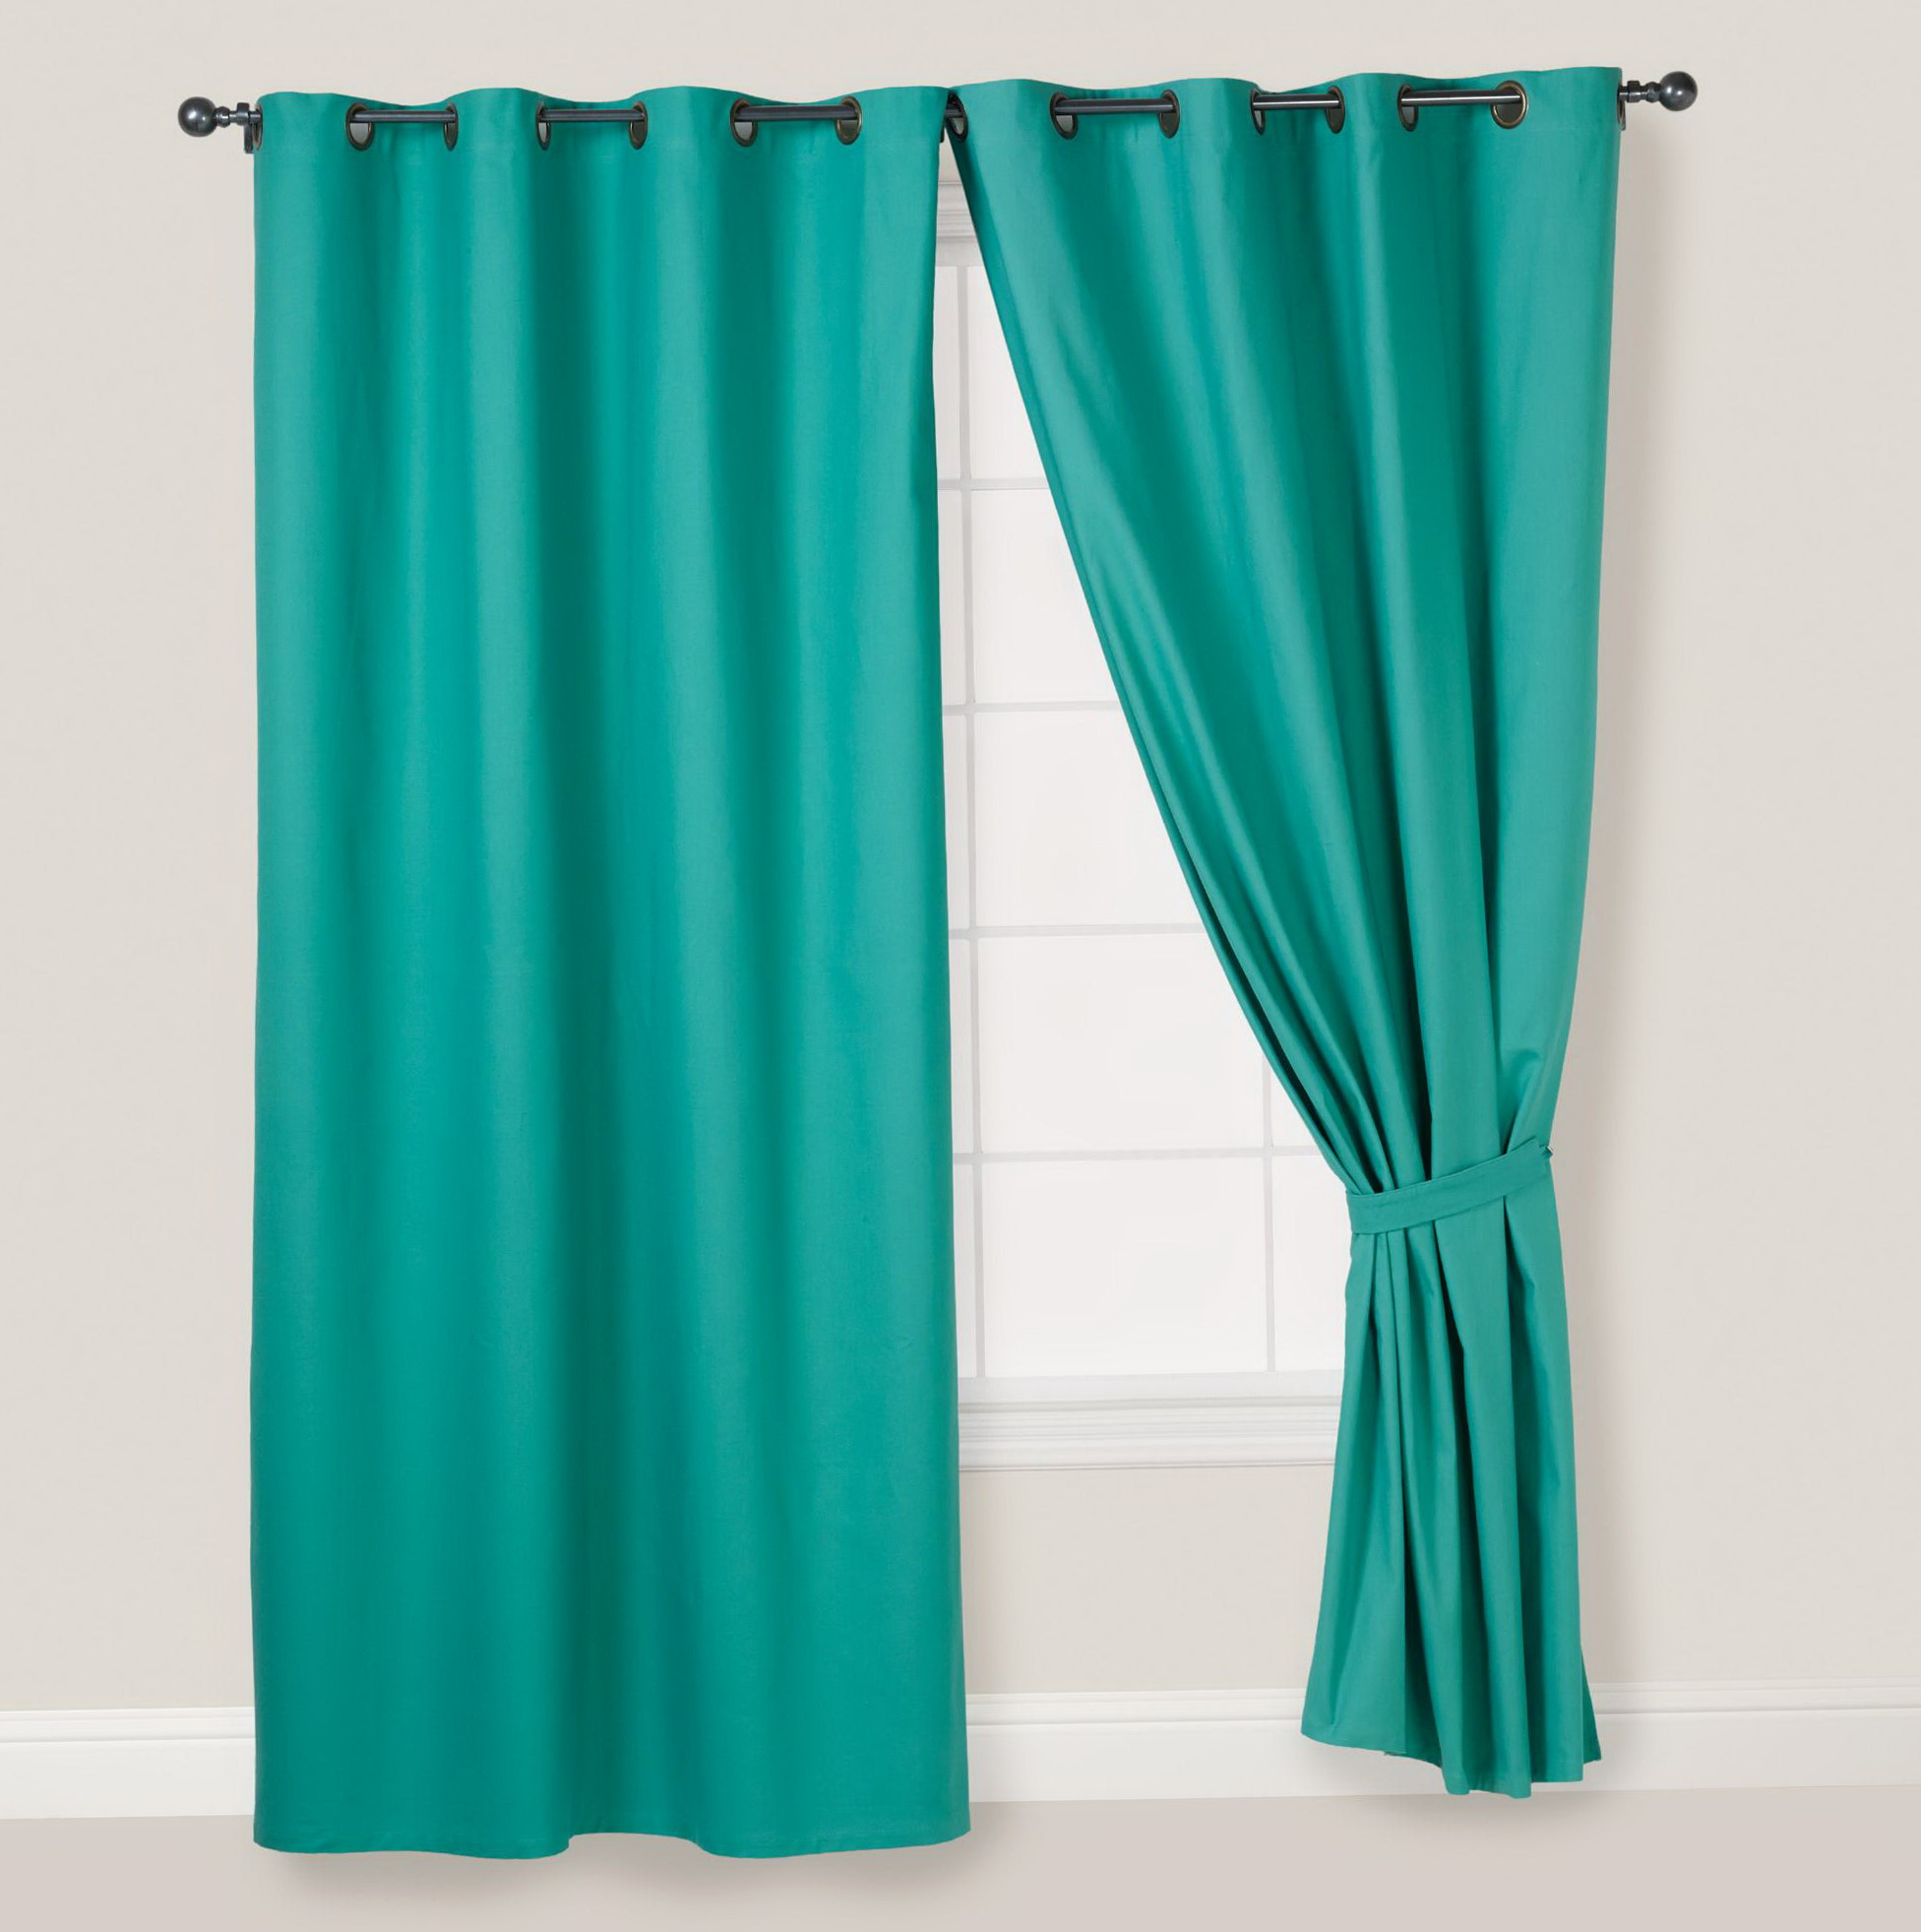 Teal Curtains With Grommets Home Design Ideas